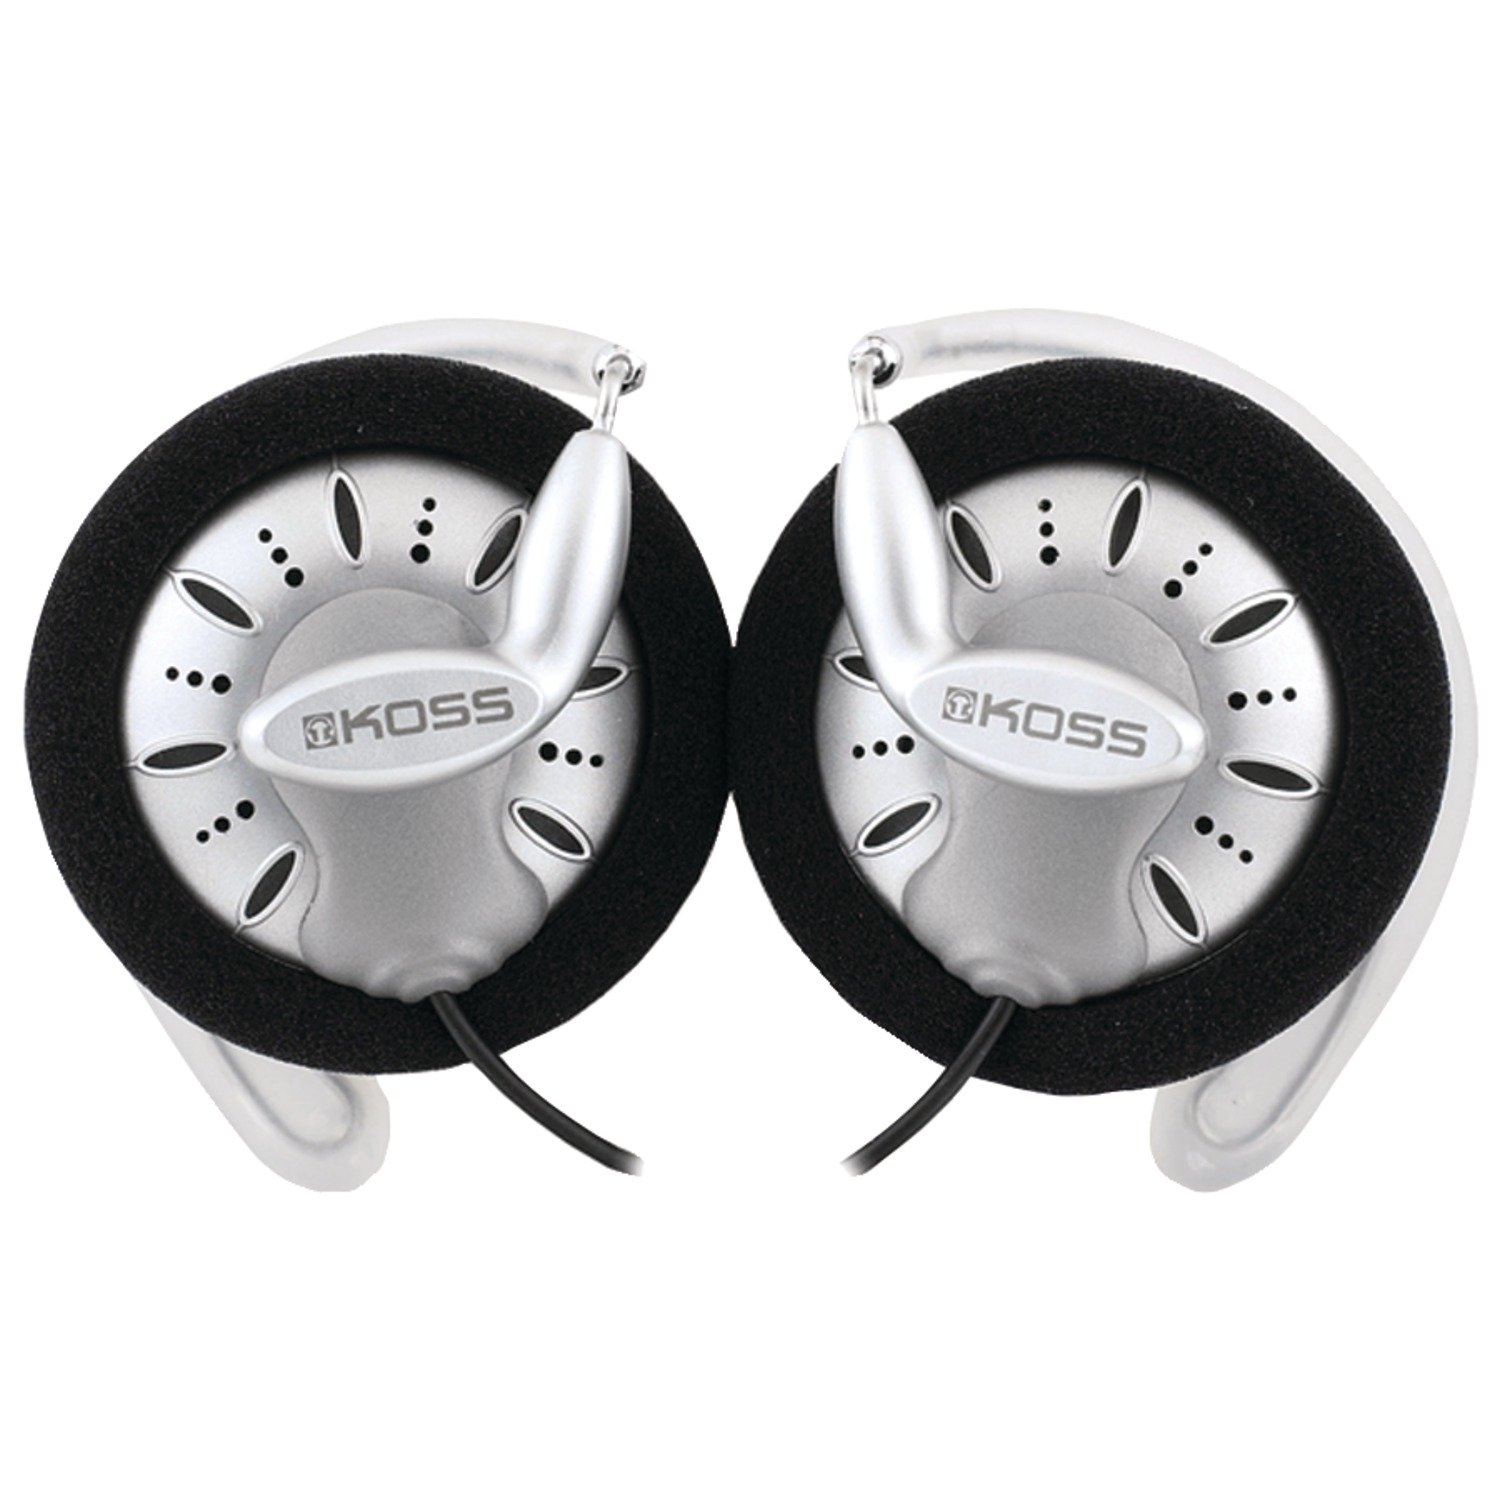 Koss KSC75 Portable Stereophone Headphones by Koss